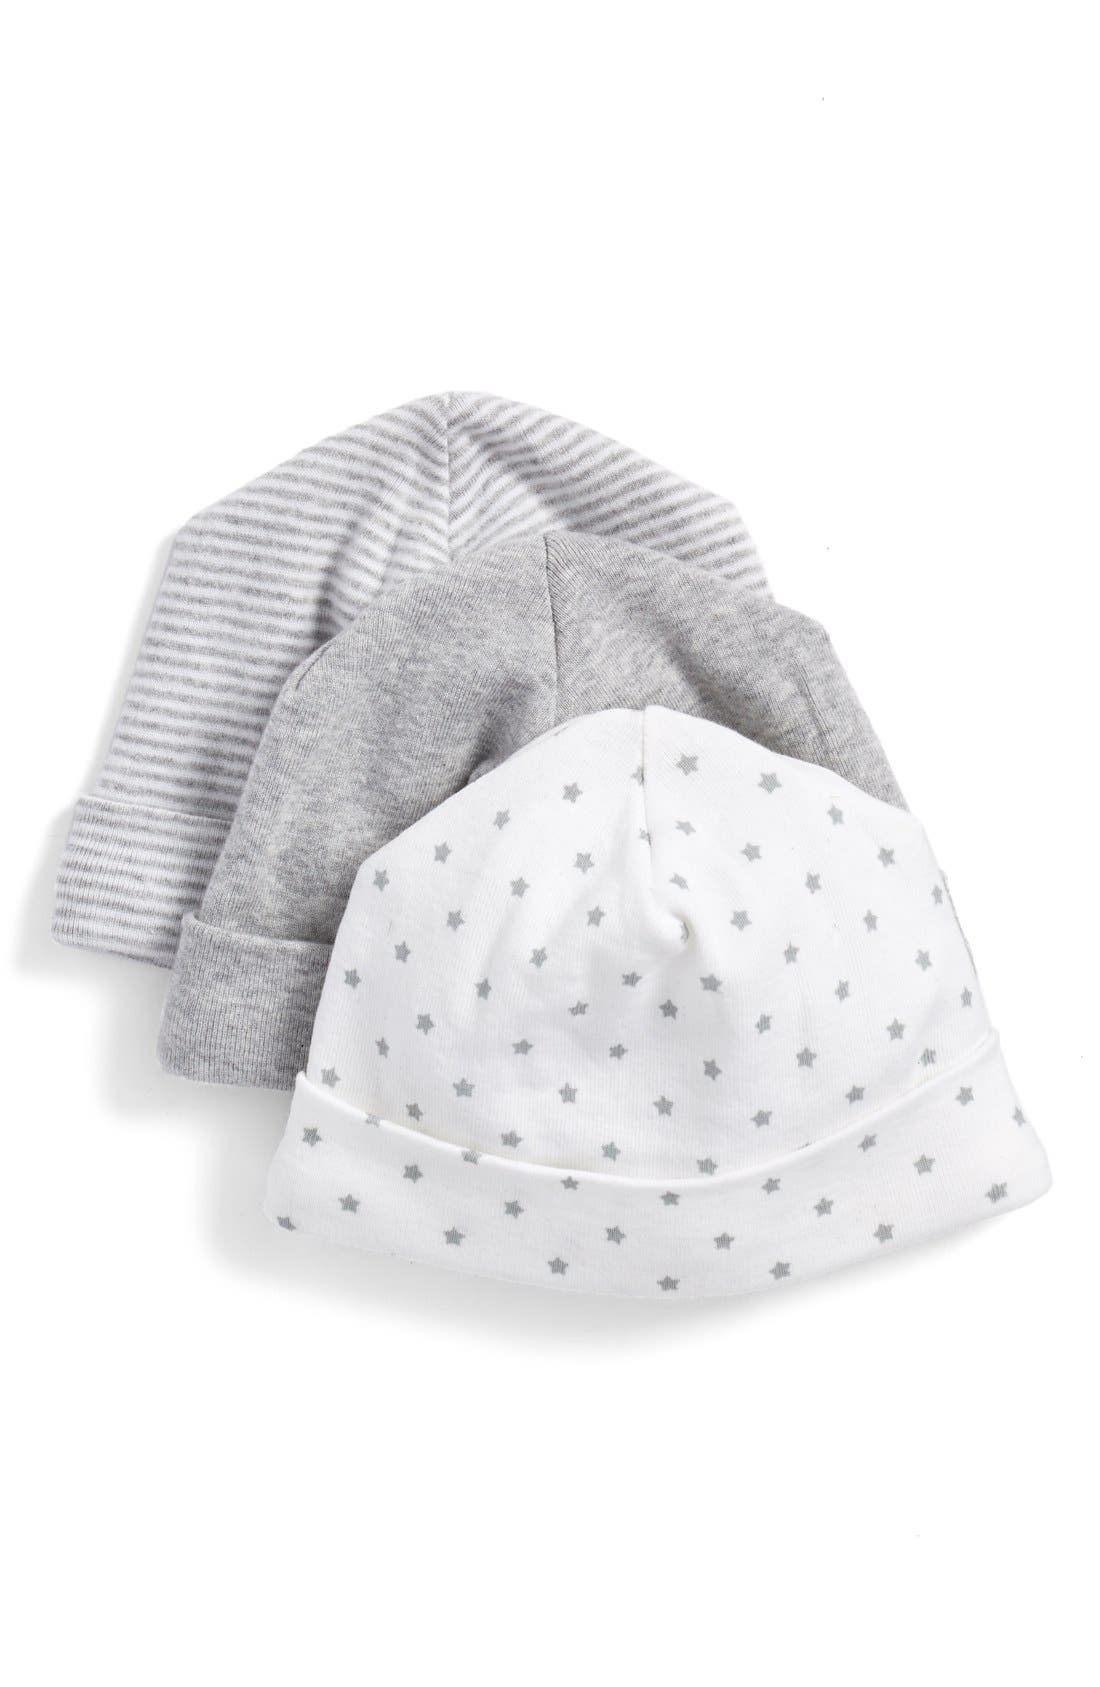 Nordstrom Baby Cotton Hats (3-Pack) (Baby)